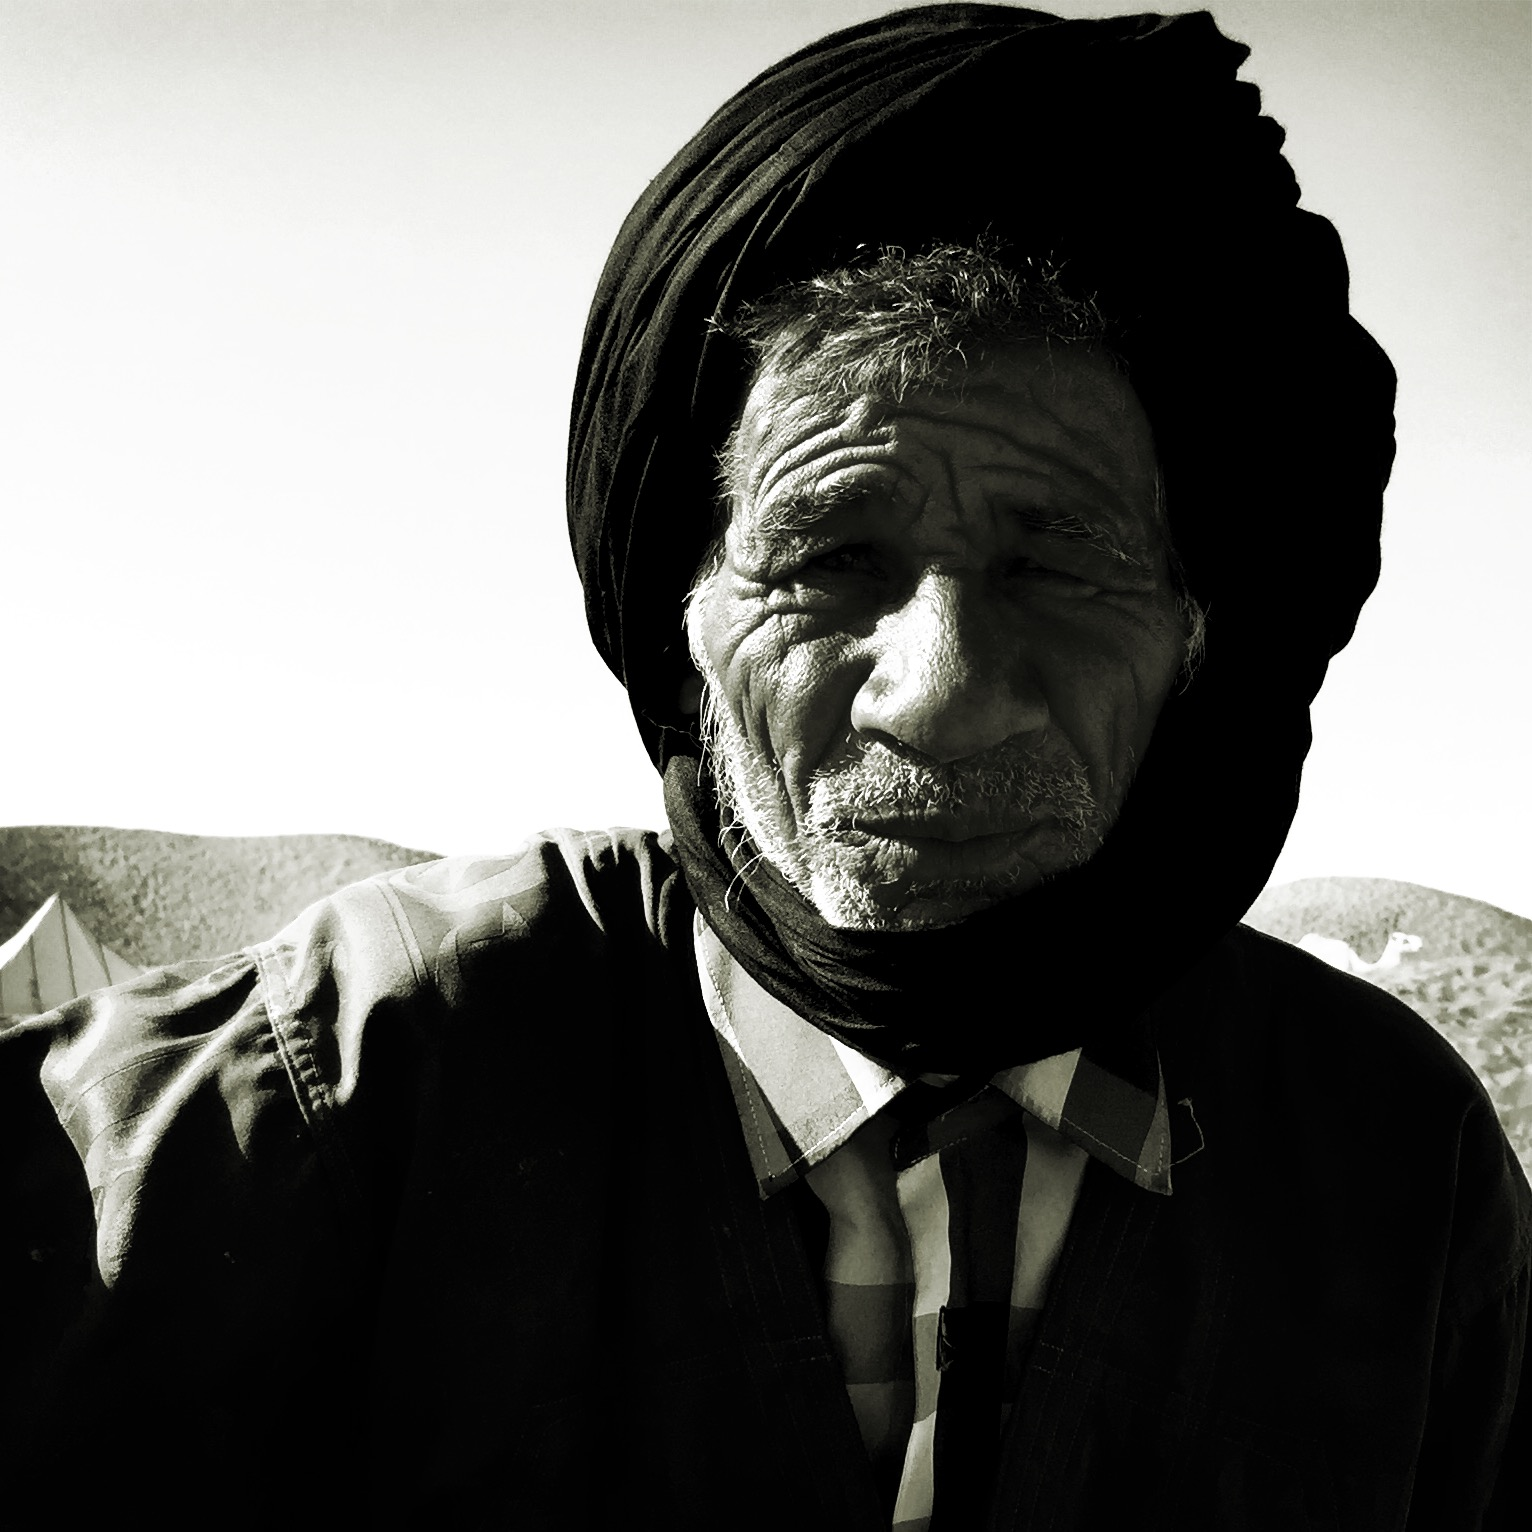 Nomads of the Moroccan desert 2015-2016